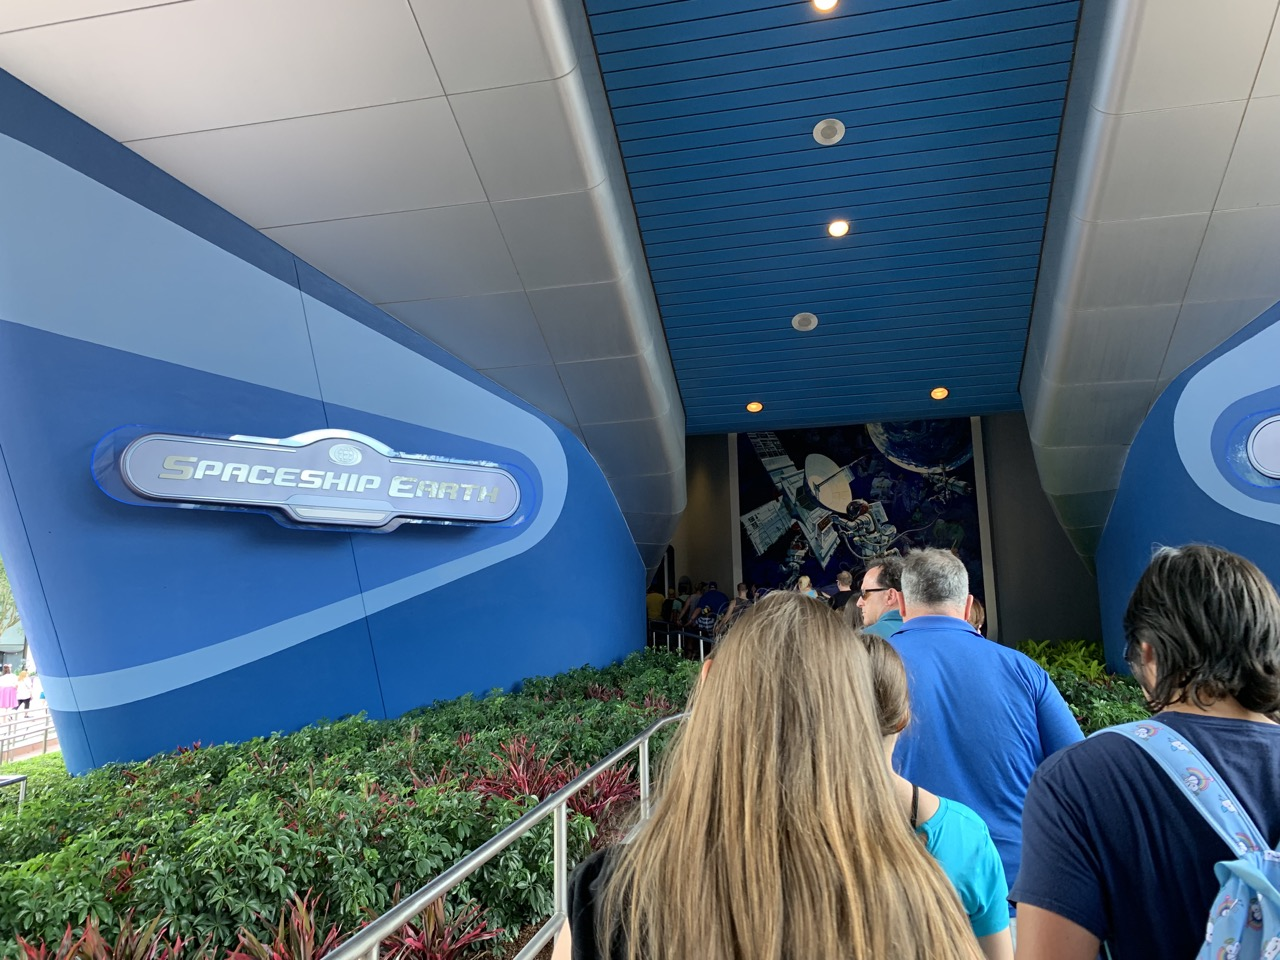 disney world trip report early summer 2019 day four 08 spaceship earth.jpeg